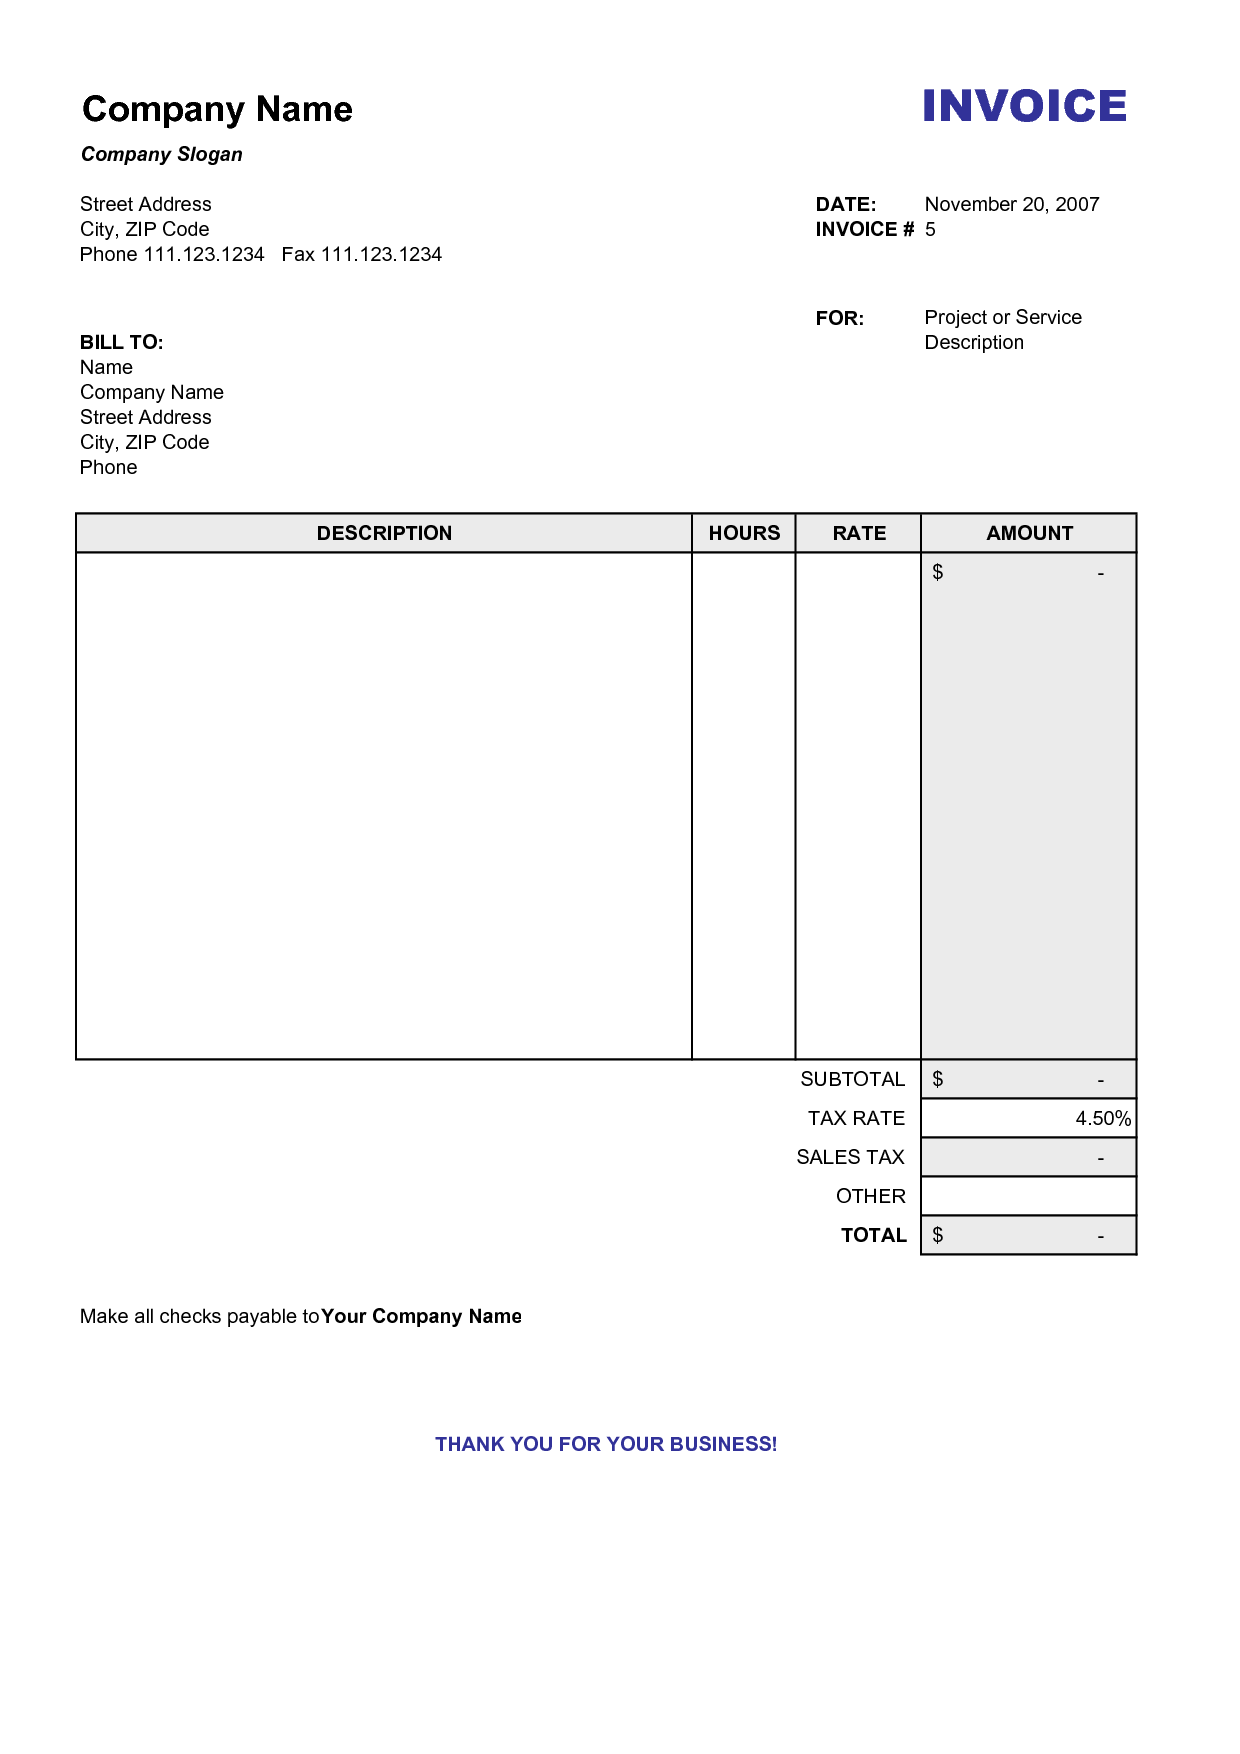 Free Samples Of Invoices and Blank Billing Invoice Scope Of Work Template organization